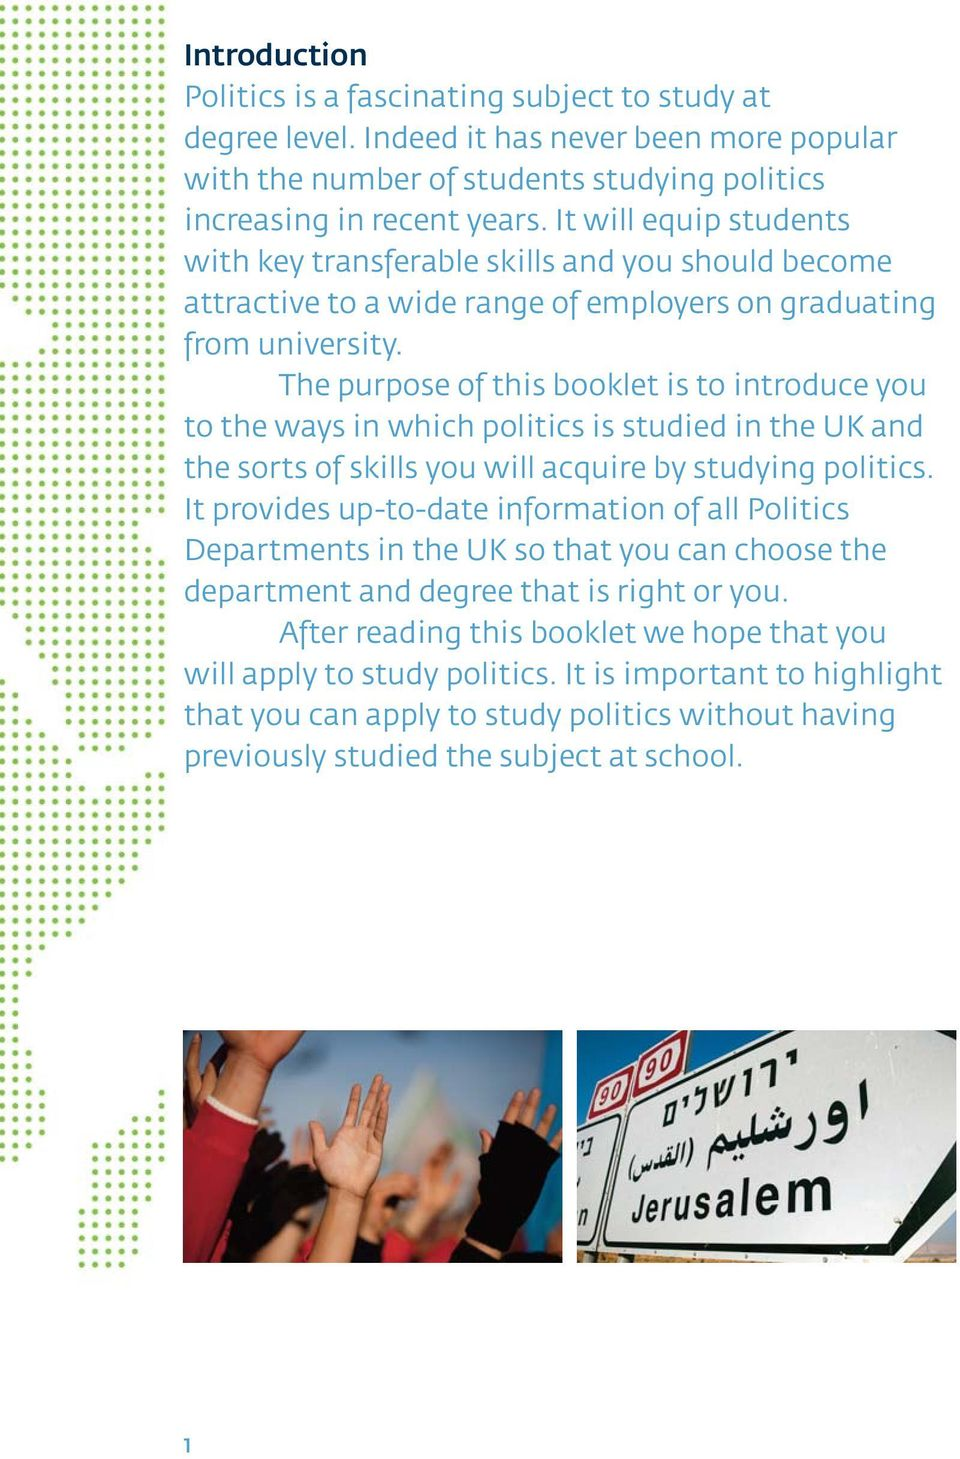 The purpose of this booklet is to introduce you to the ways in which politics is studied in the UK and the sorts of skills you will acquire by studying politics.